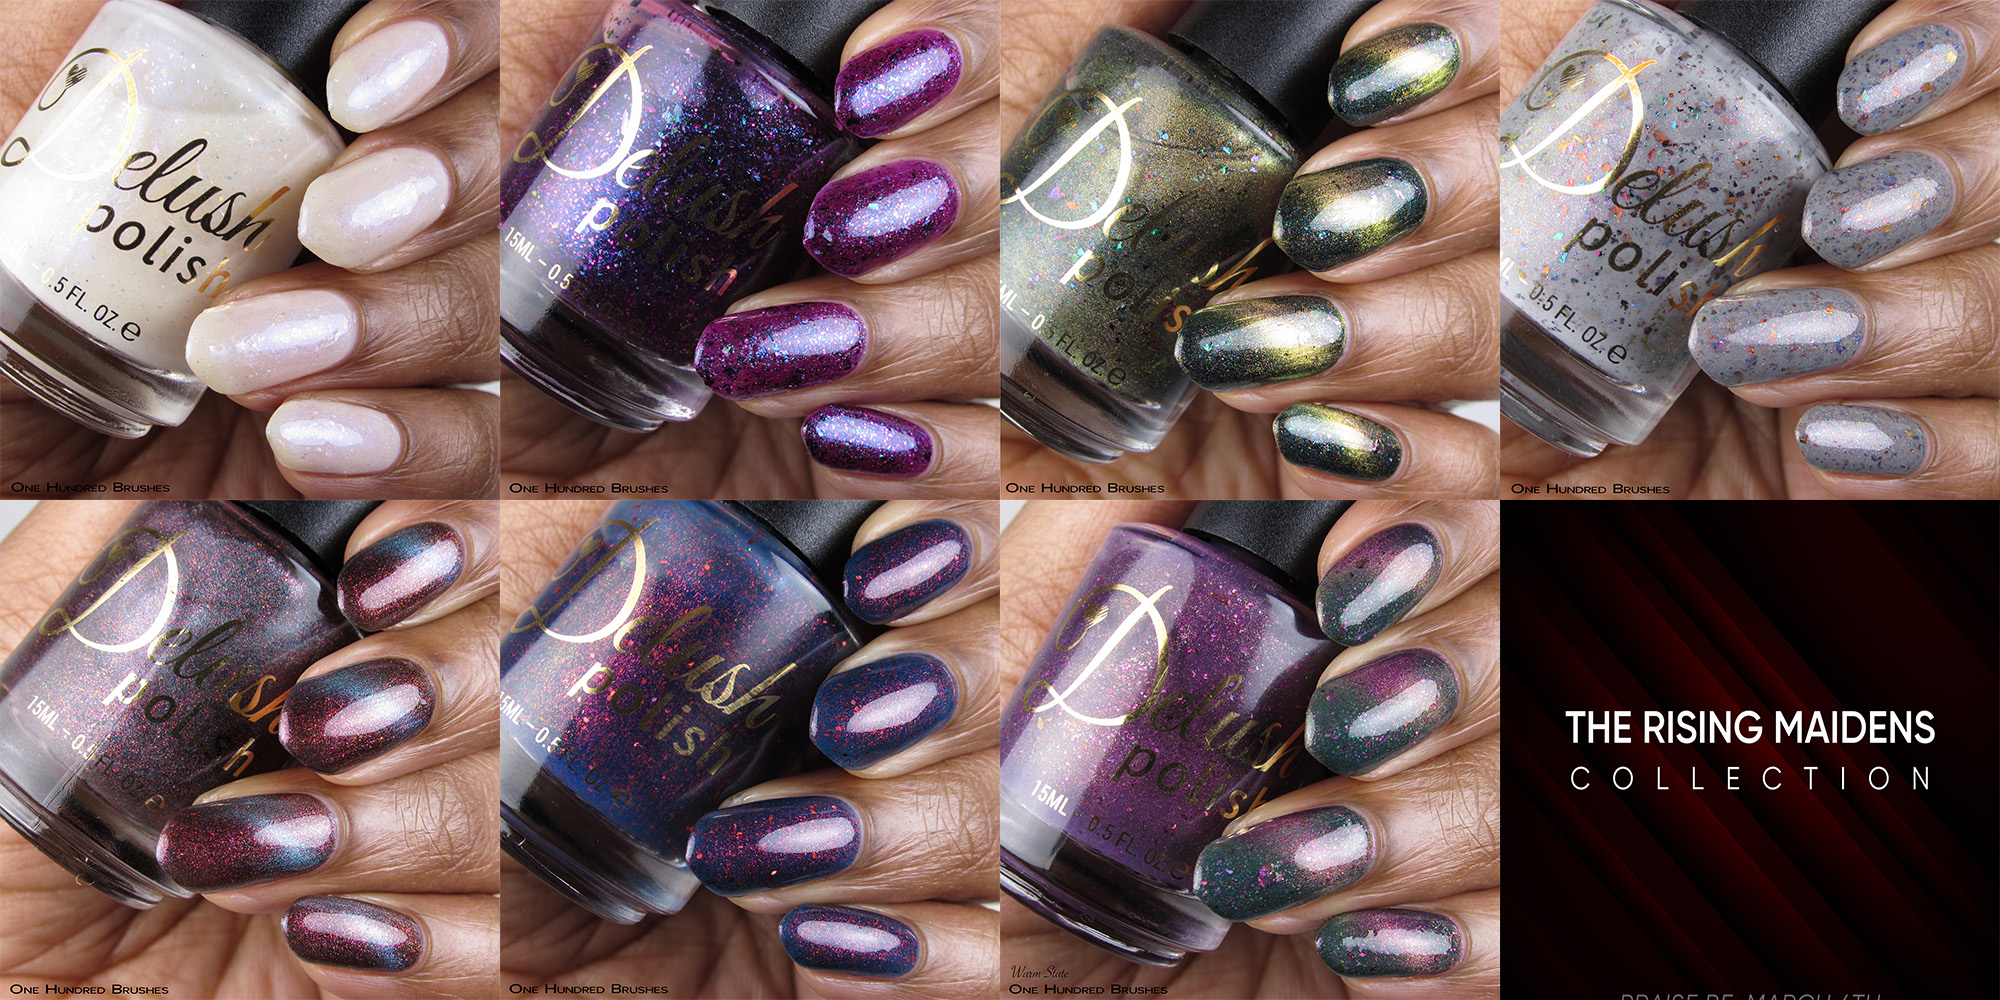 The Rising Maidens Collection - Delush Polish - March 2019